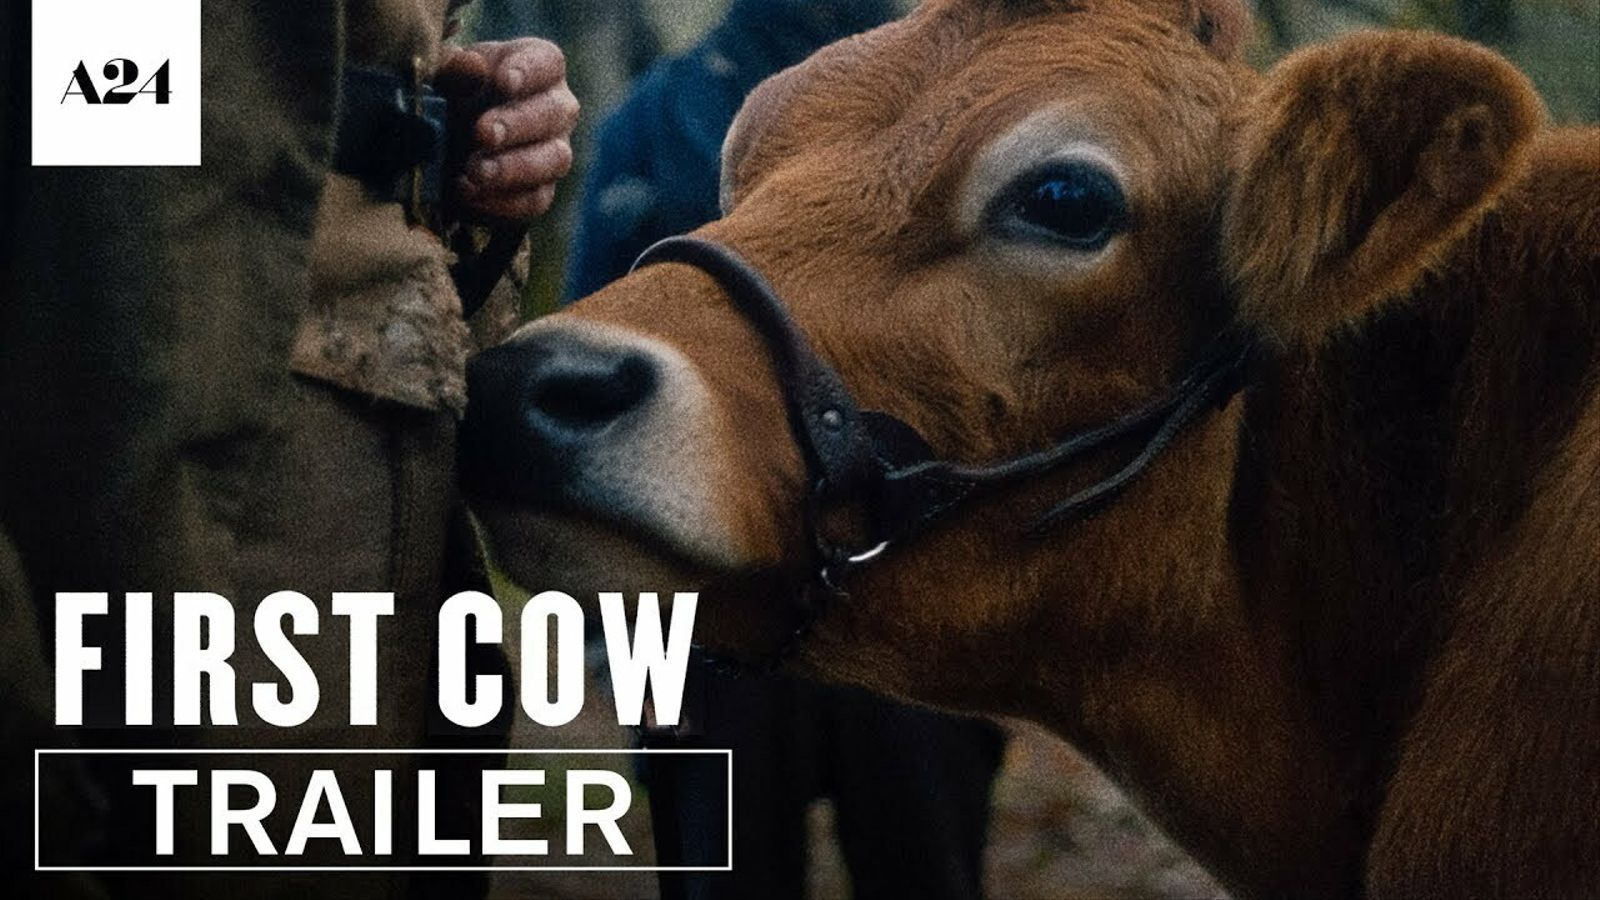 Tràiler de 'First cow', de Kelly Reichardt